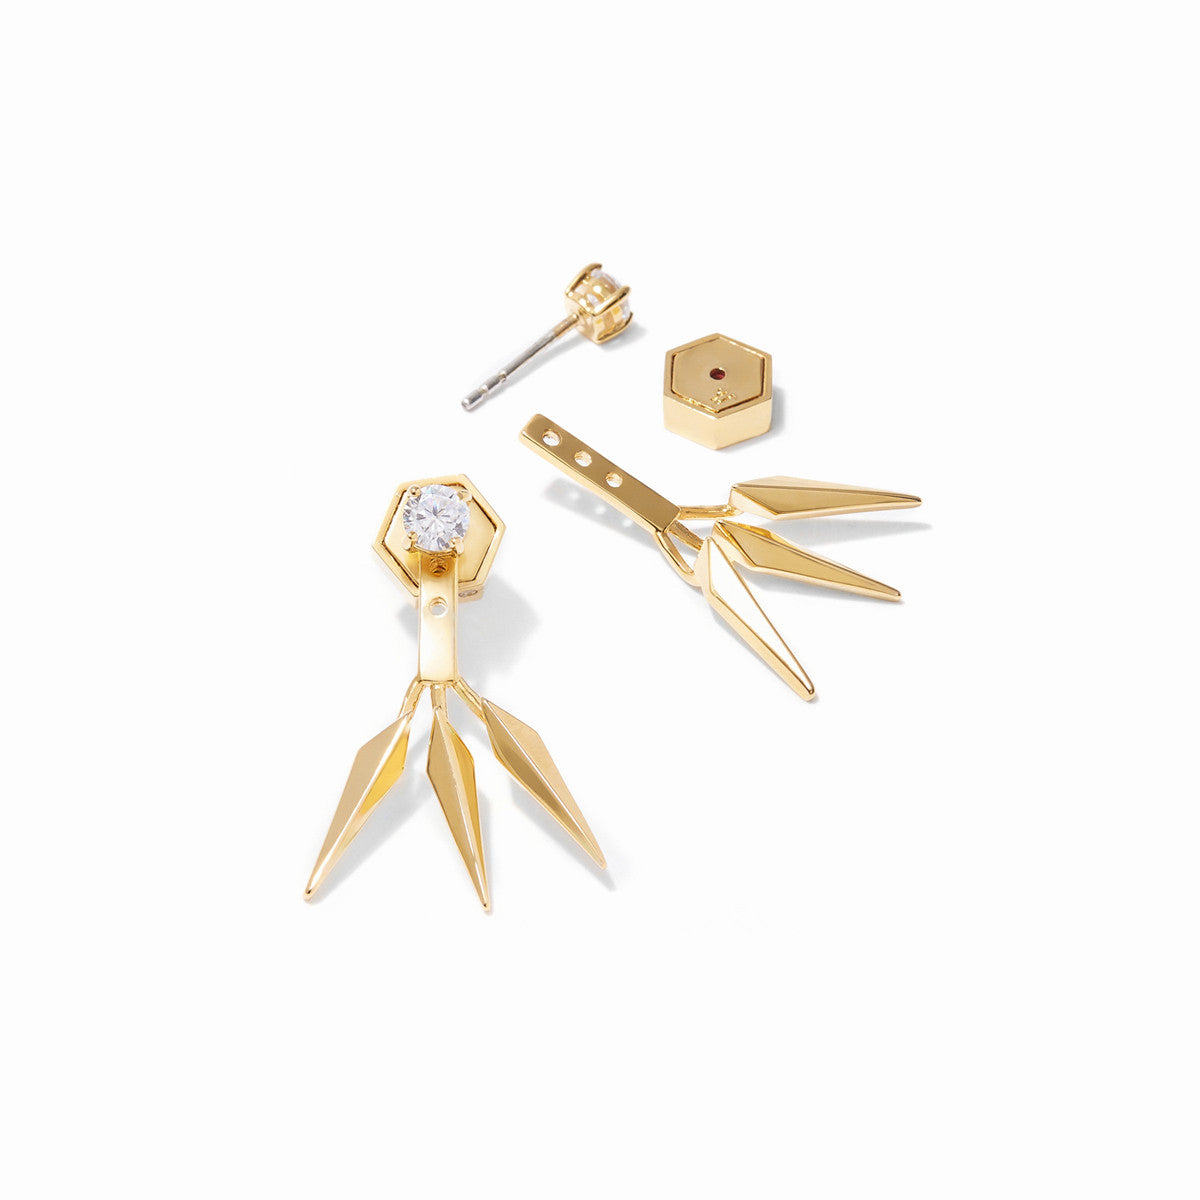 Vide CZ Ear Jackets - Gold